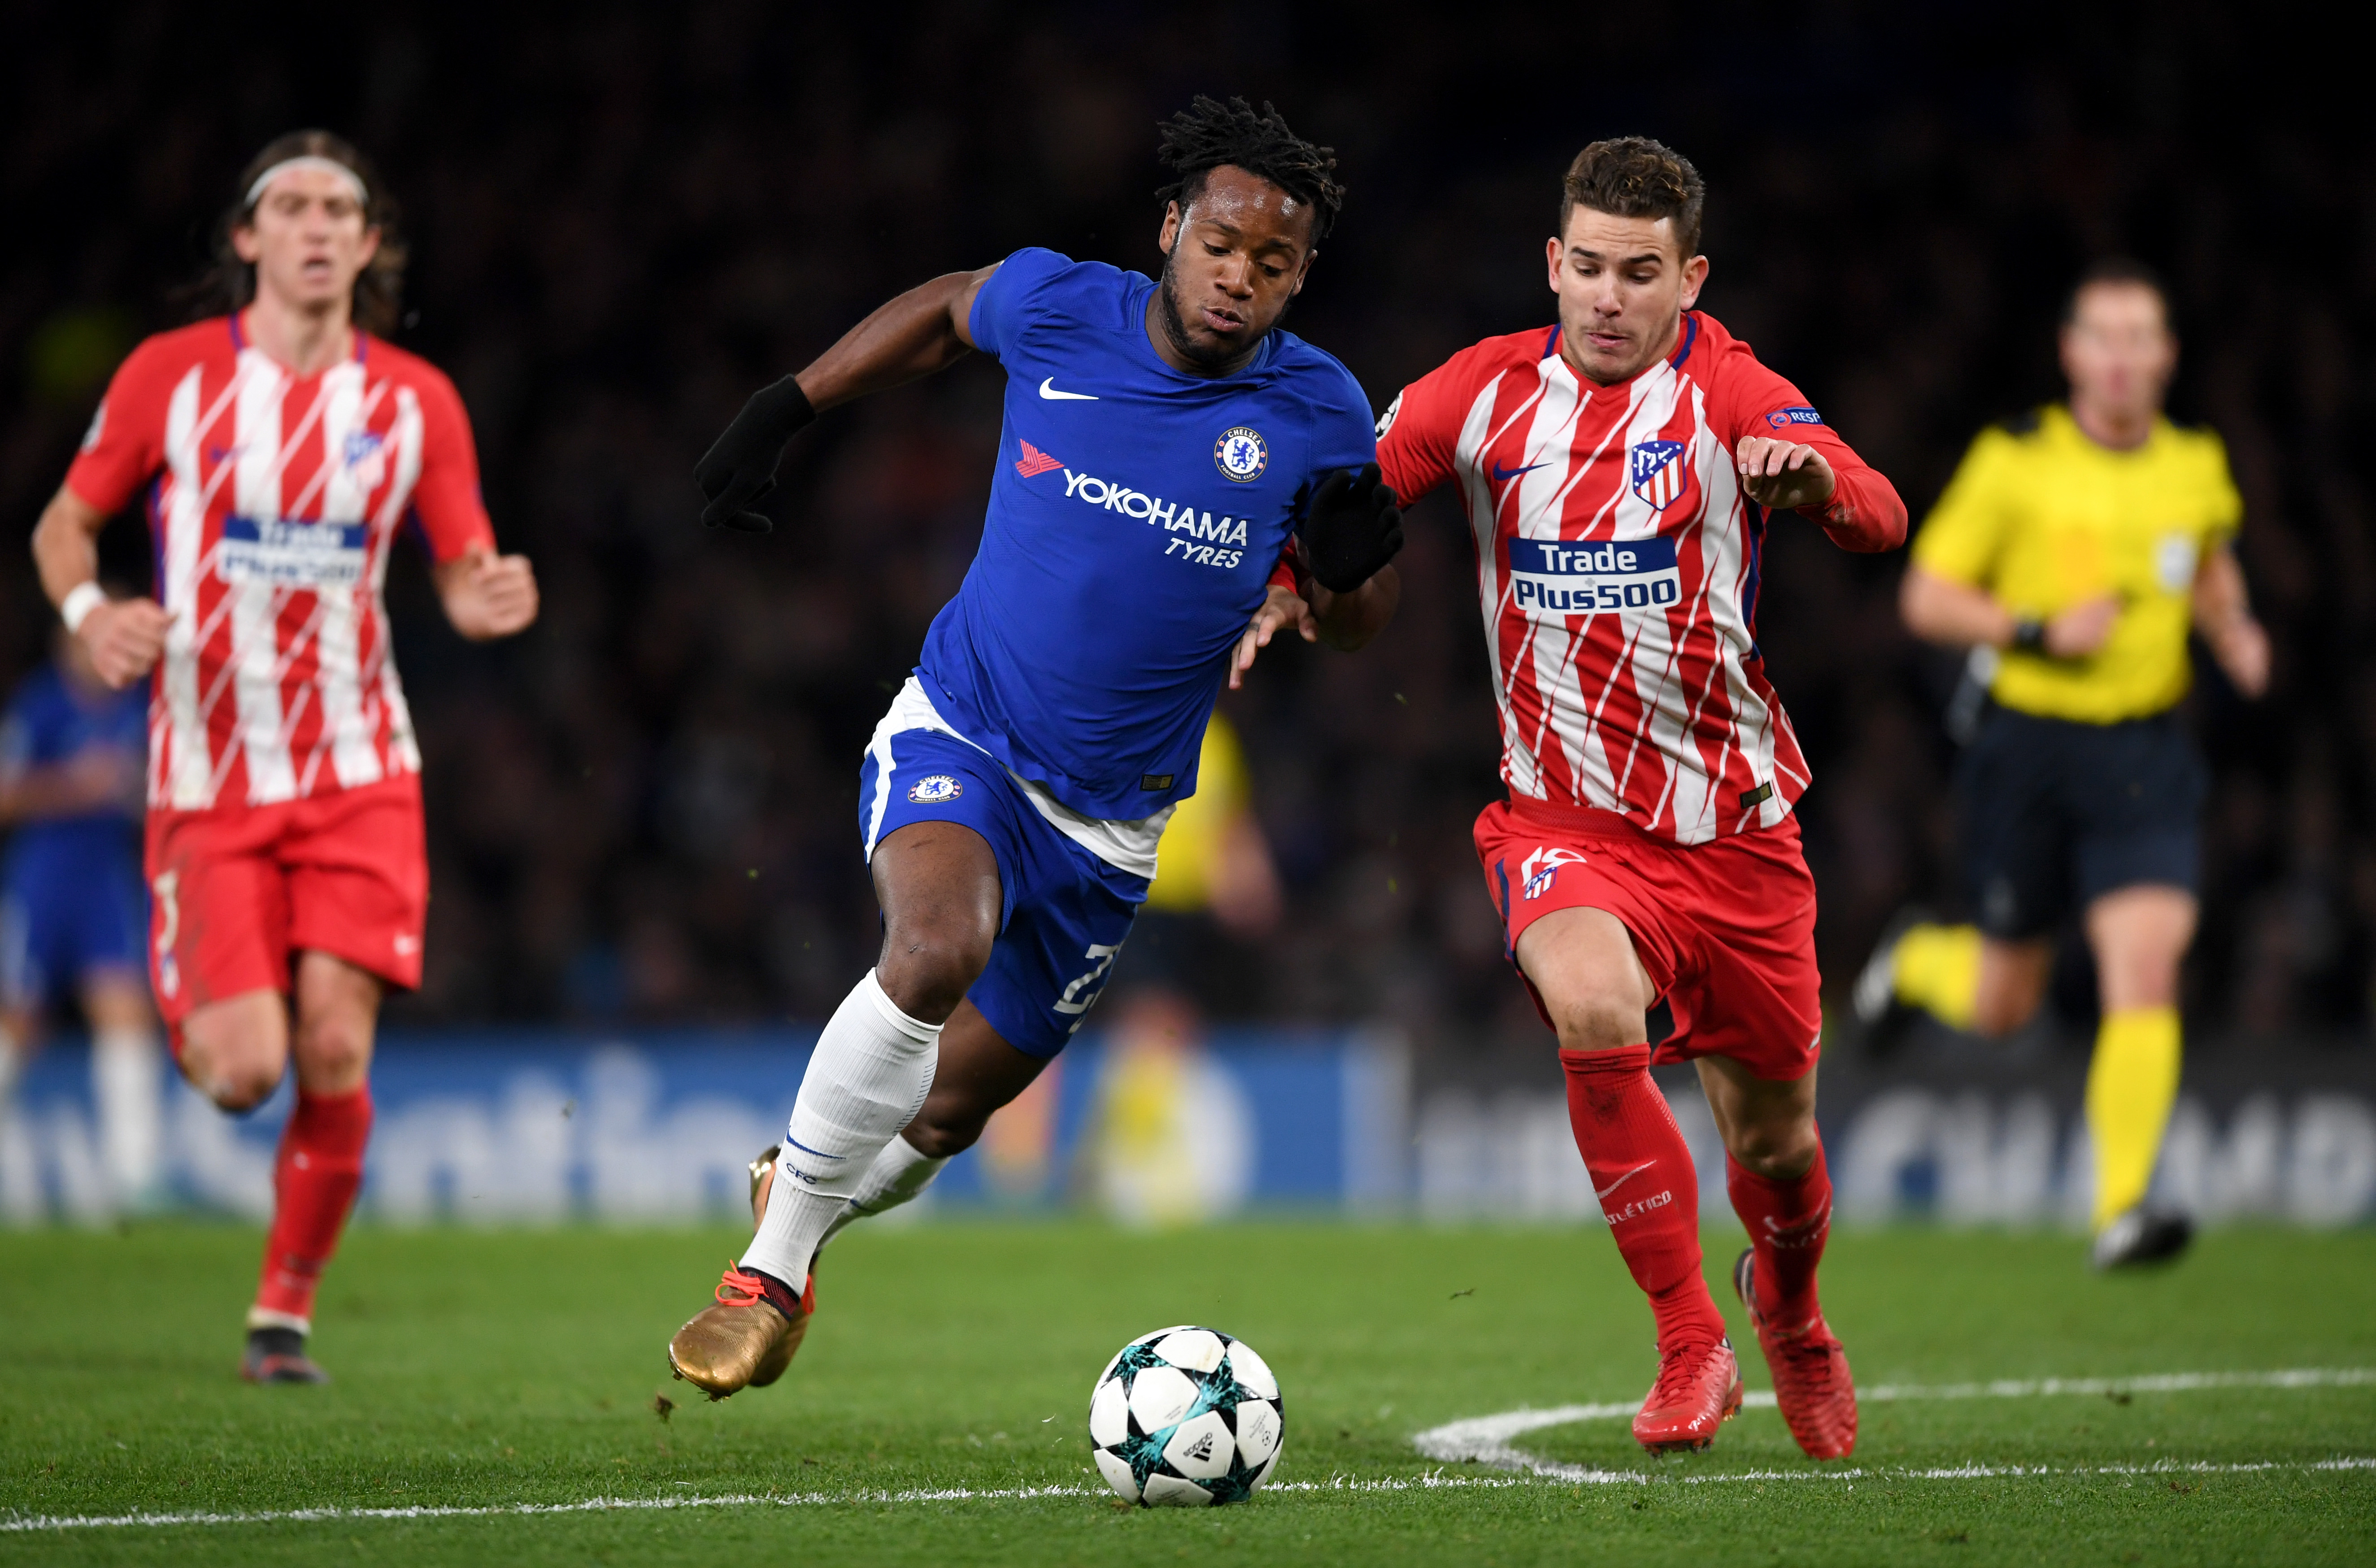 LONDON, ENGLAND - DECEMBER 05: Michy Batshuayi of Chelsea is challenged by Lucas Hernandez of Atletico Madrid during the UEFA Champions League group C match between Chelsea FC and Atletico Madrid at Stamford Bridge on December 5, 2017 in London, United Kingdom. (Photo by Shaun Botterill/Getty Images)